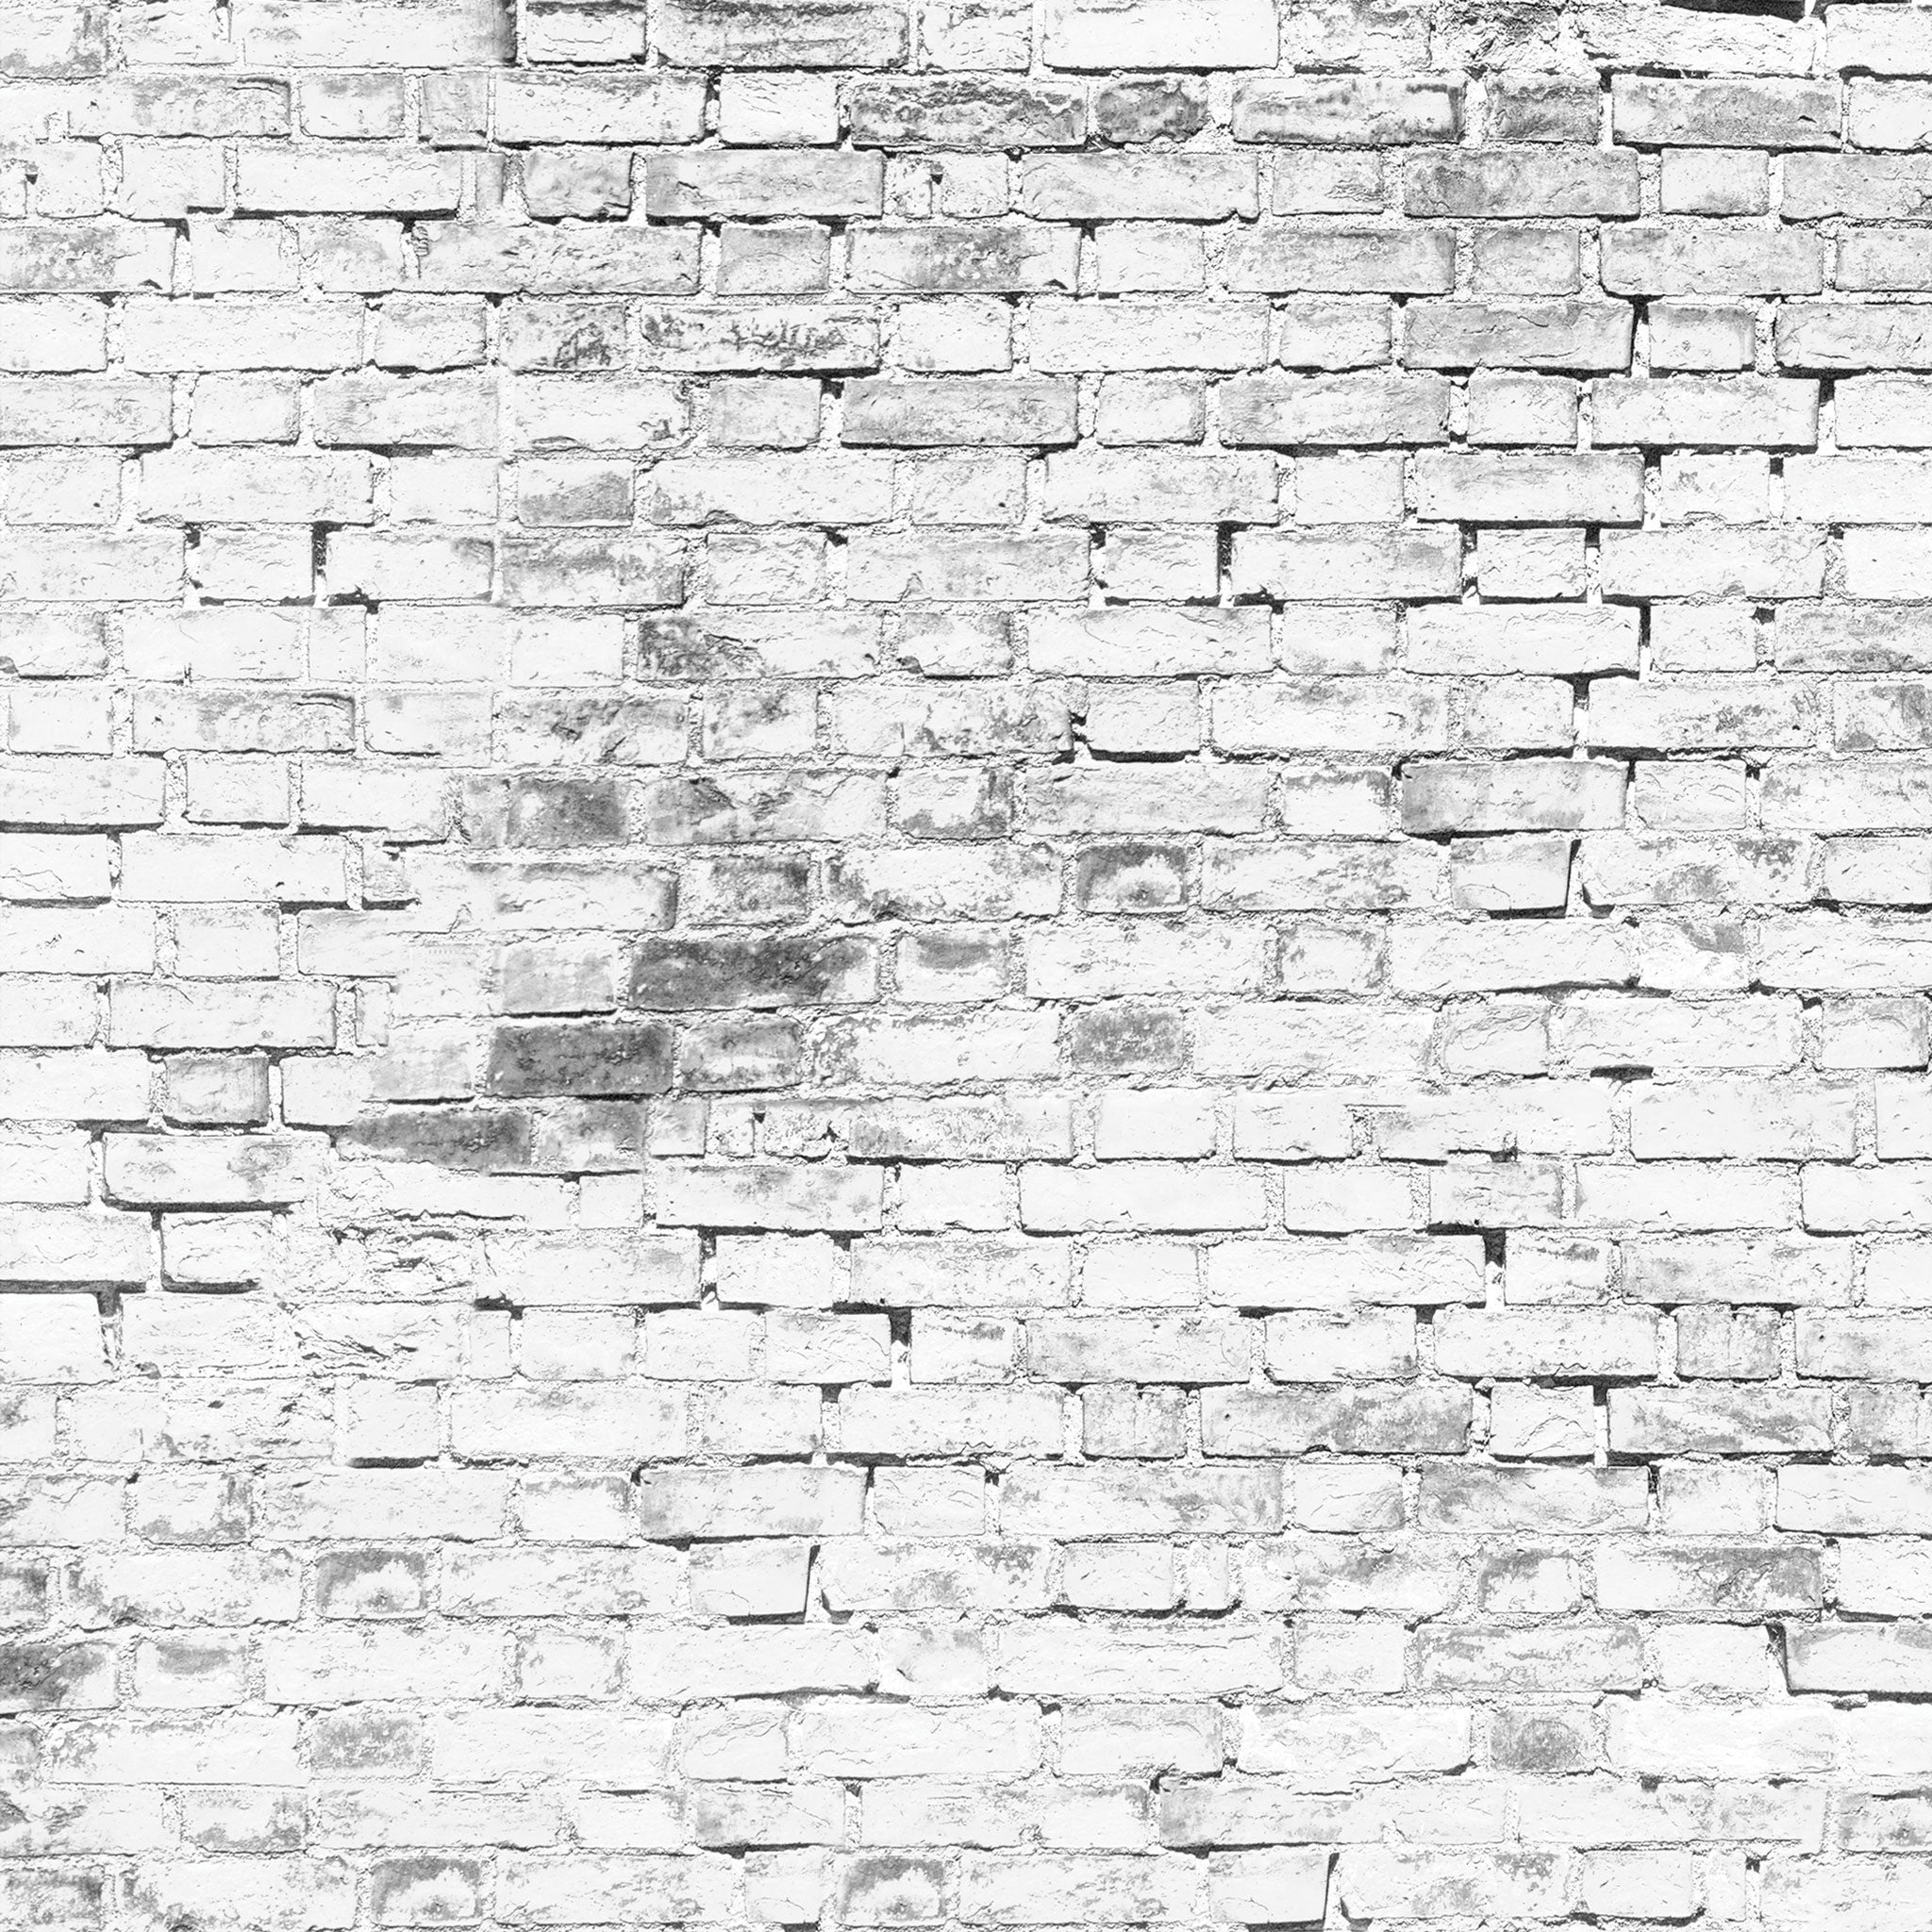 Grunge White Brick Photo Backdrop – PepperLu